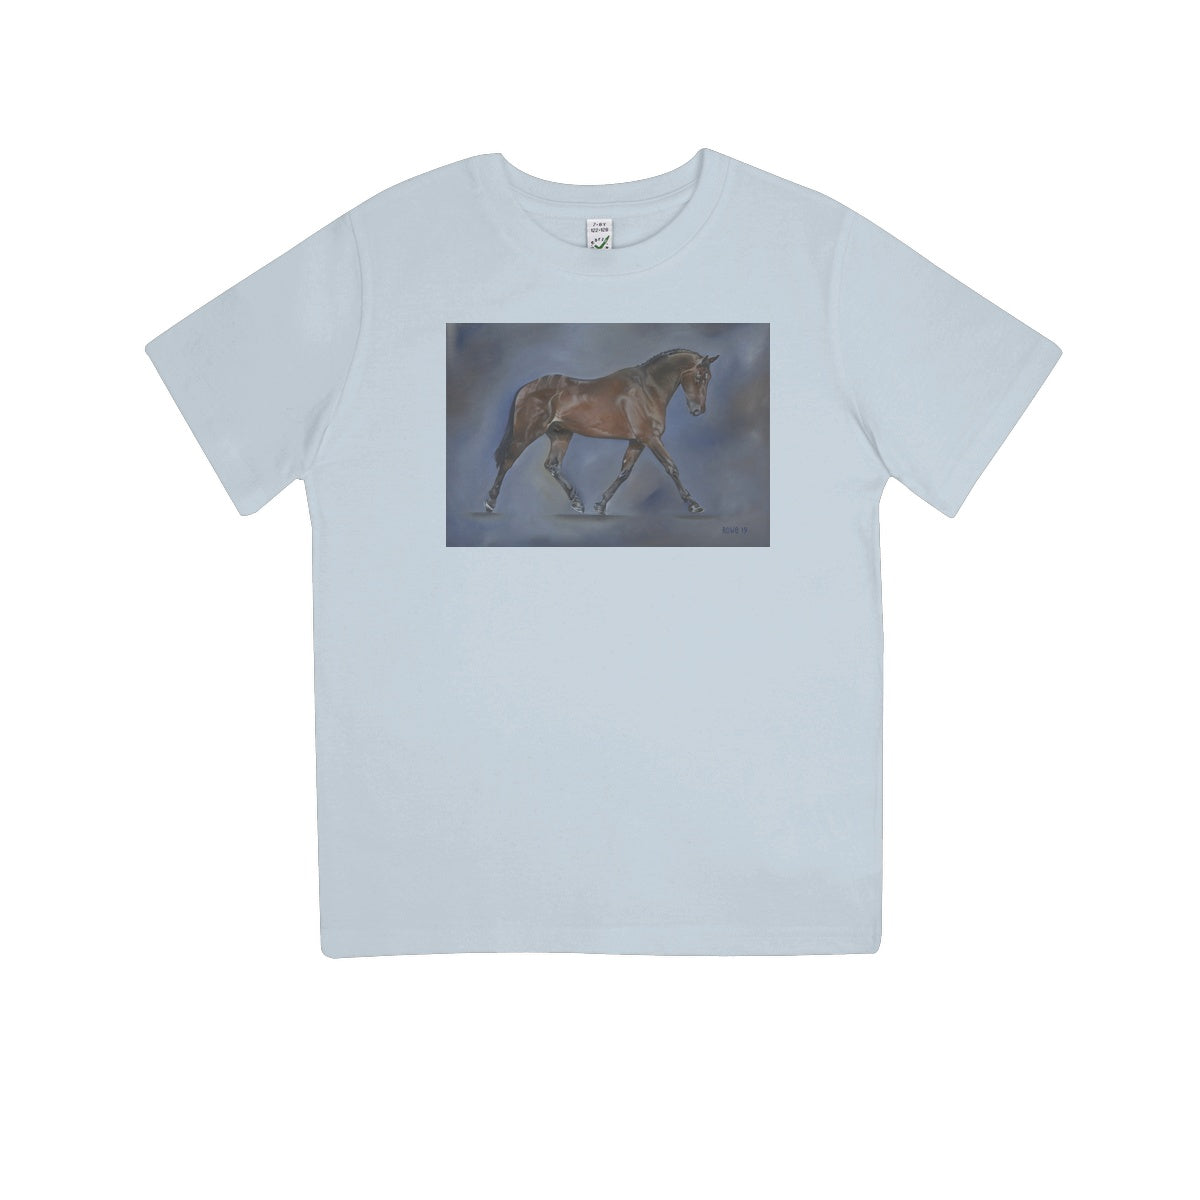 Dressage Kids 100% Organic T-Shirt